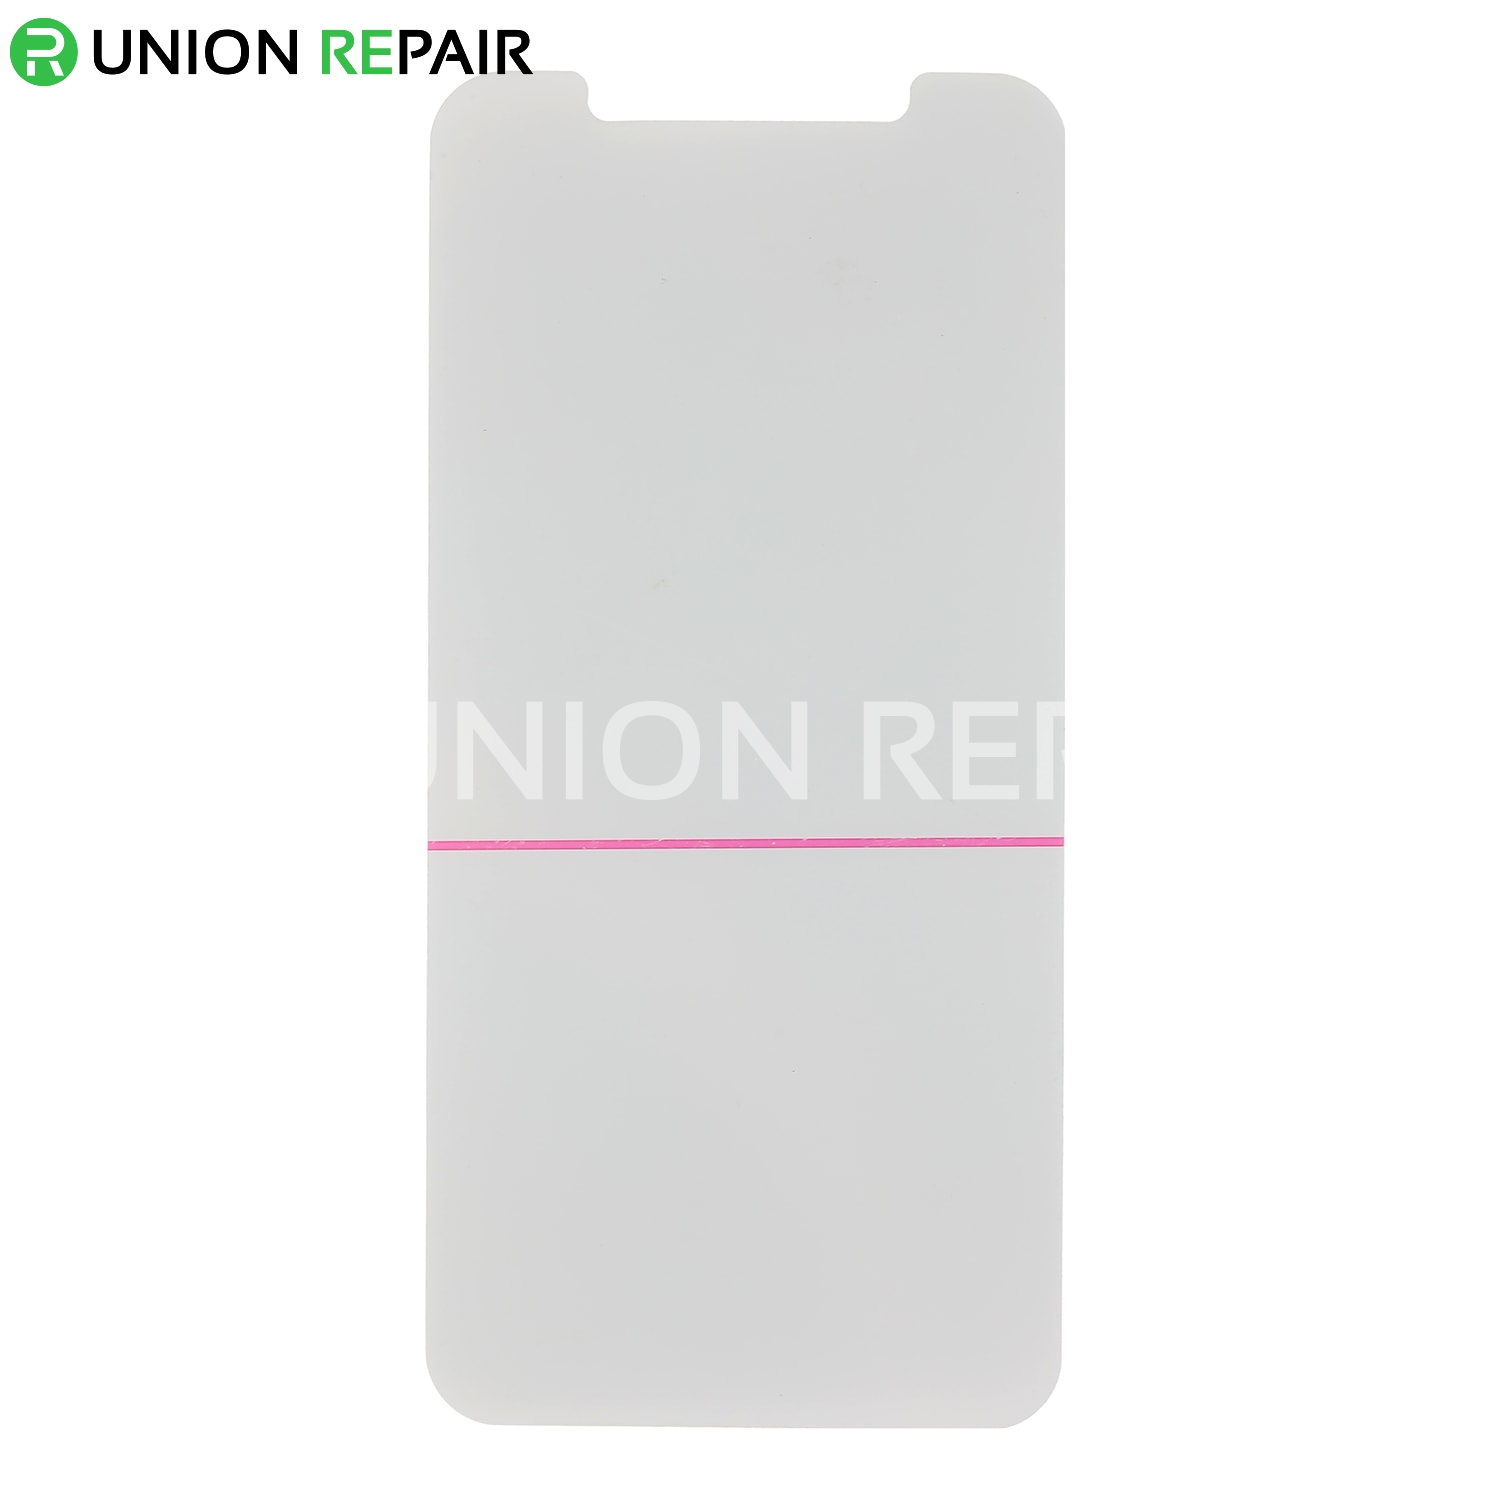 Polarizer Film LCD Screen Filter for iPhone X/Xs